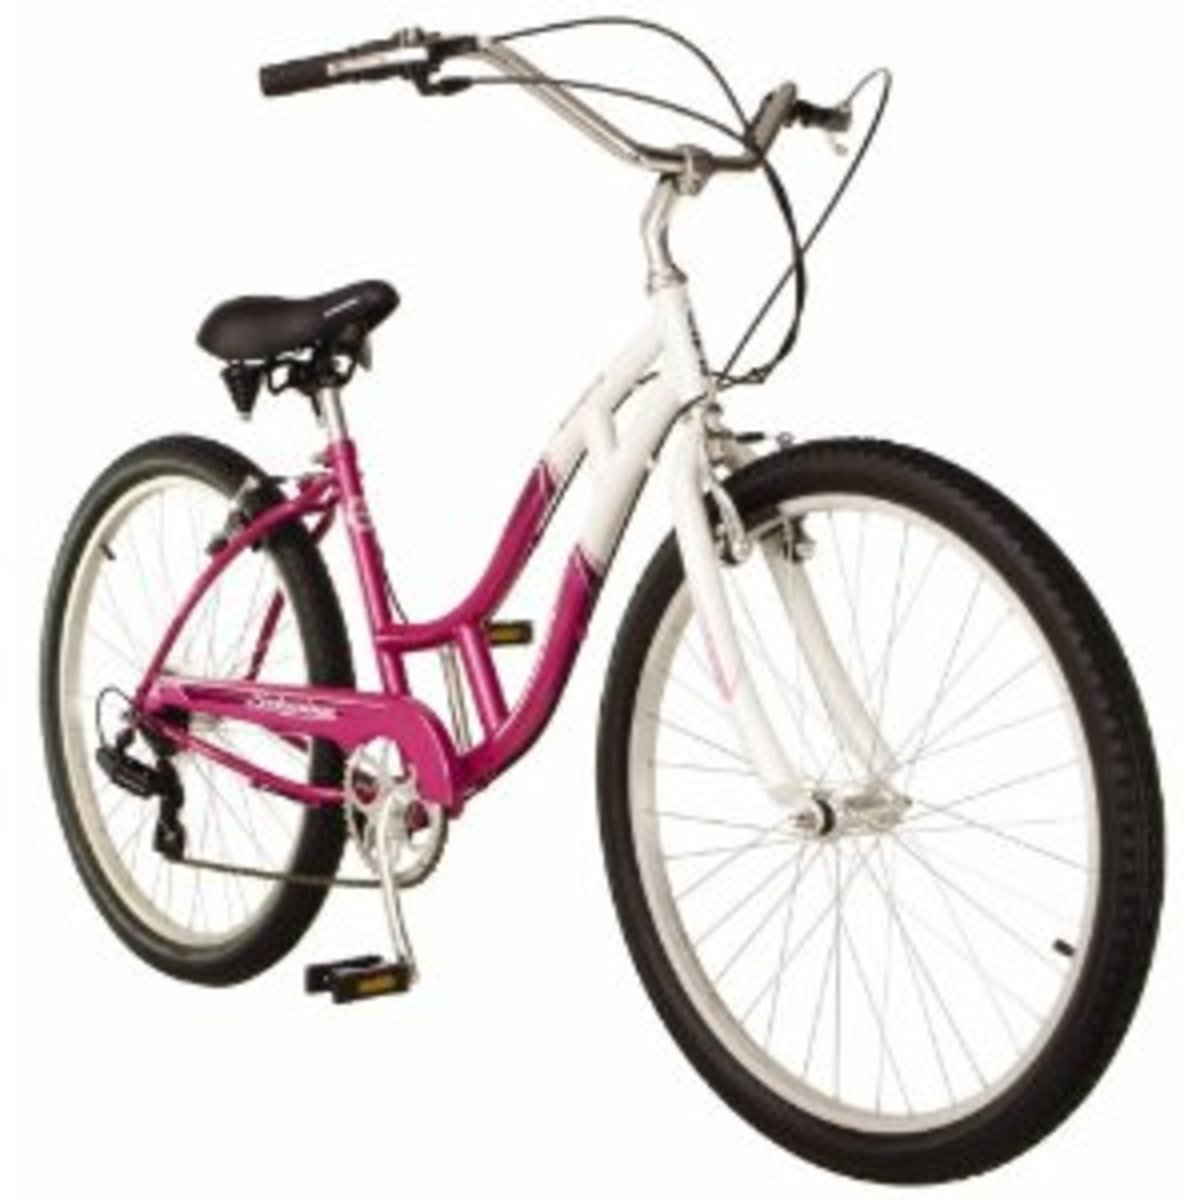 a-review-of-womens-cruiser-bikes